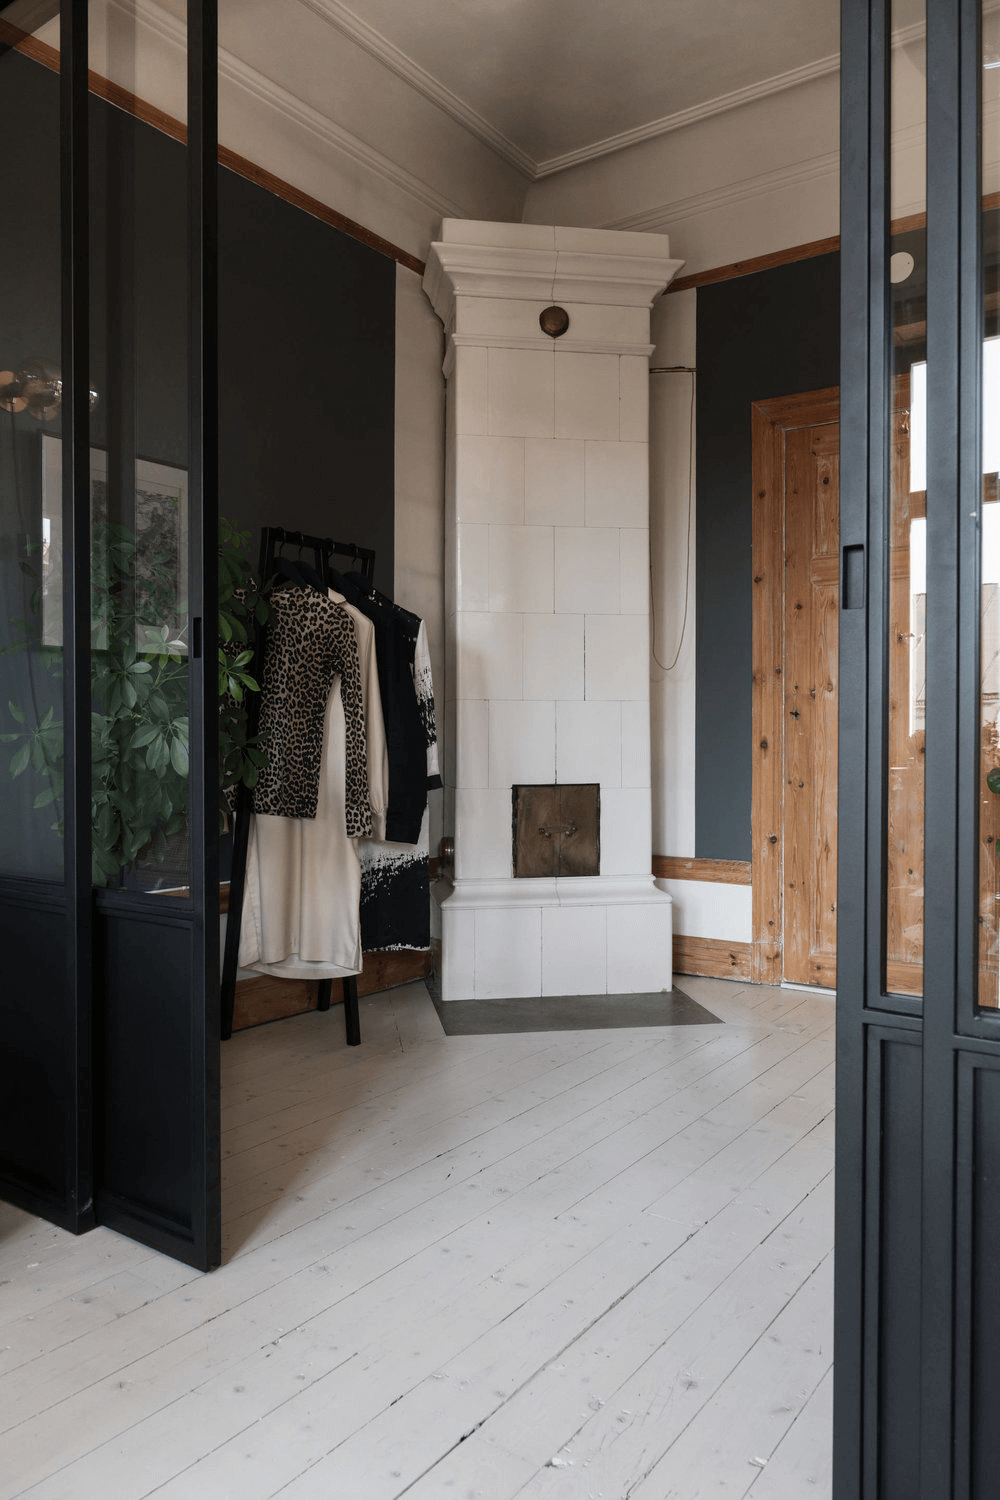 this is a wooden styled Scandinavian apartment with a white stone fireplace